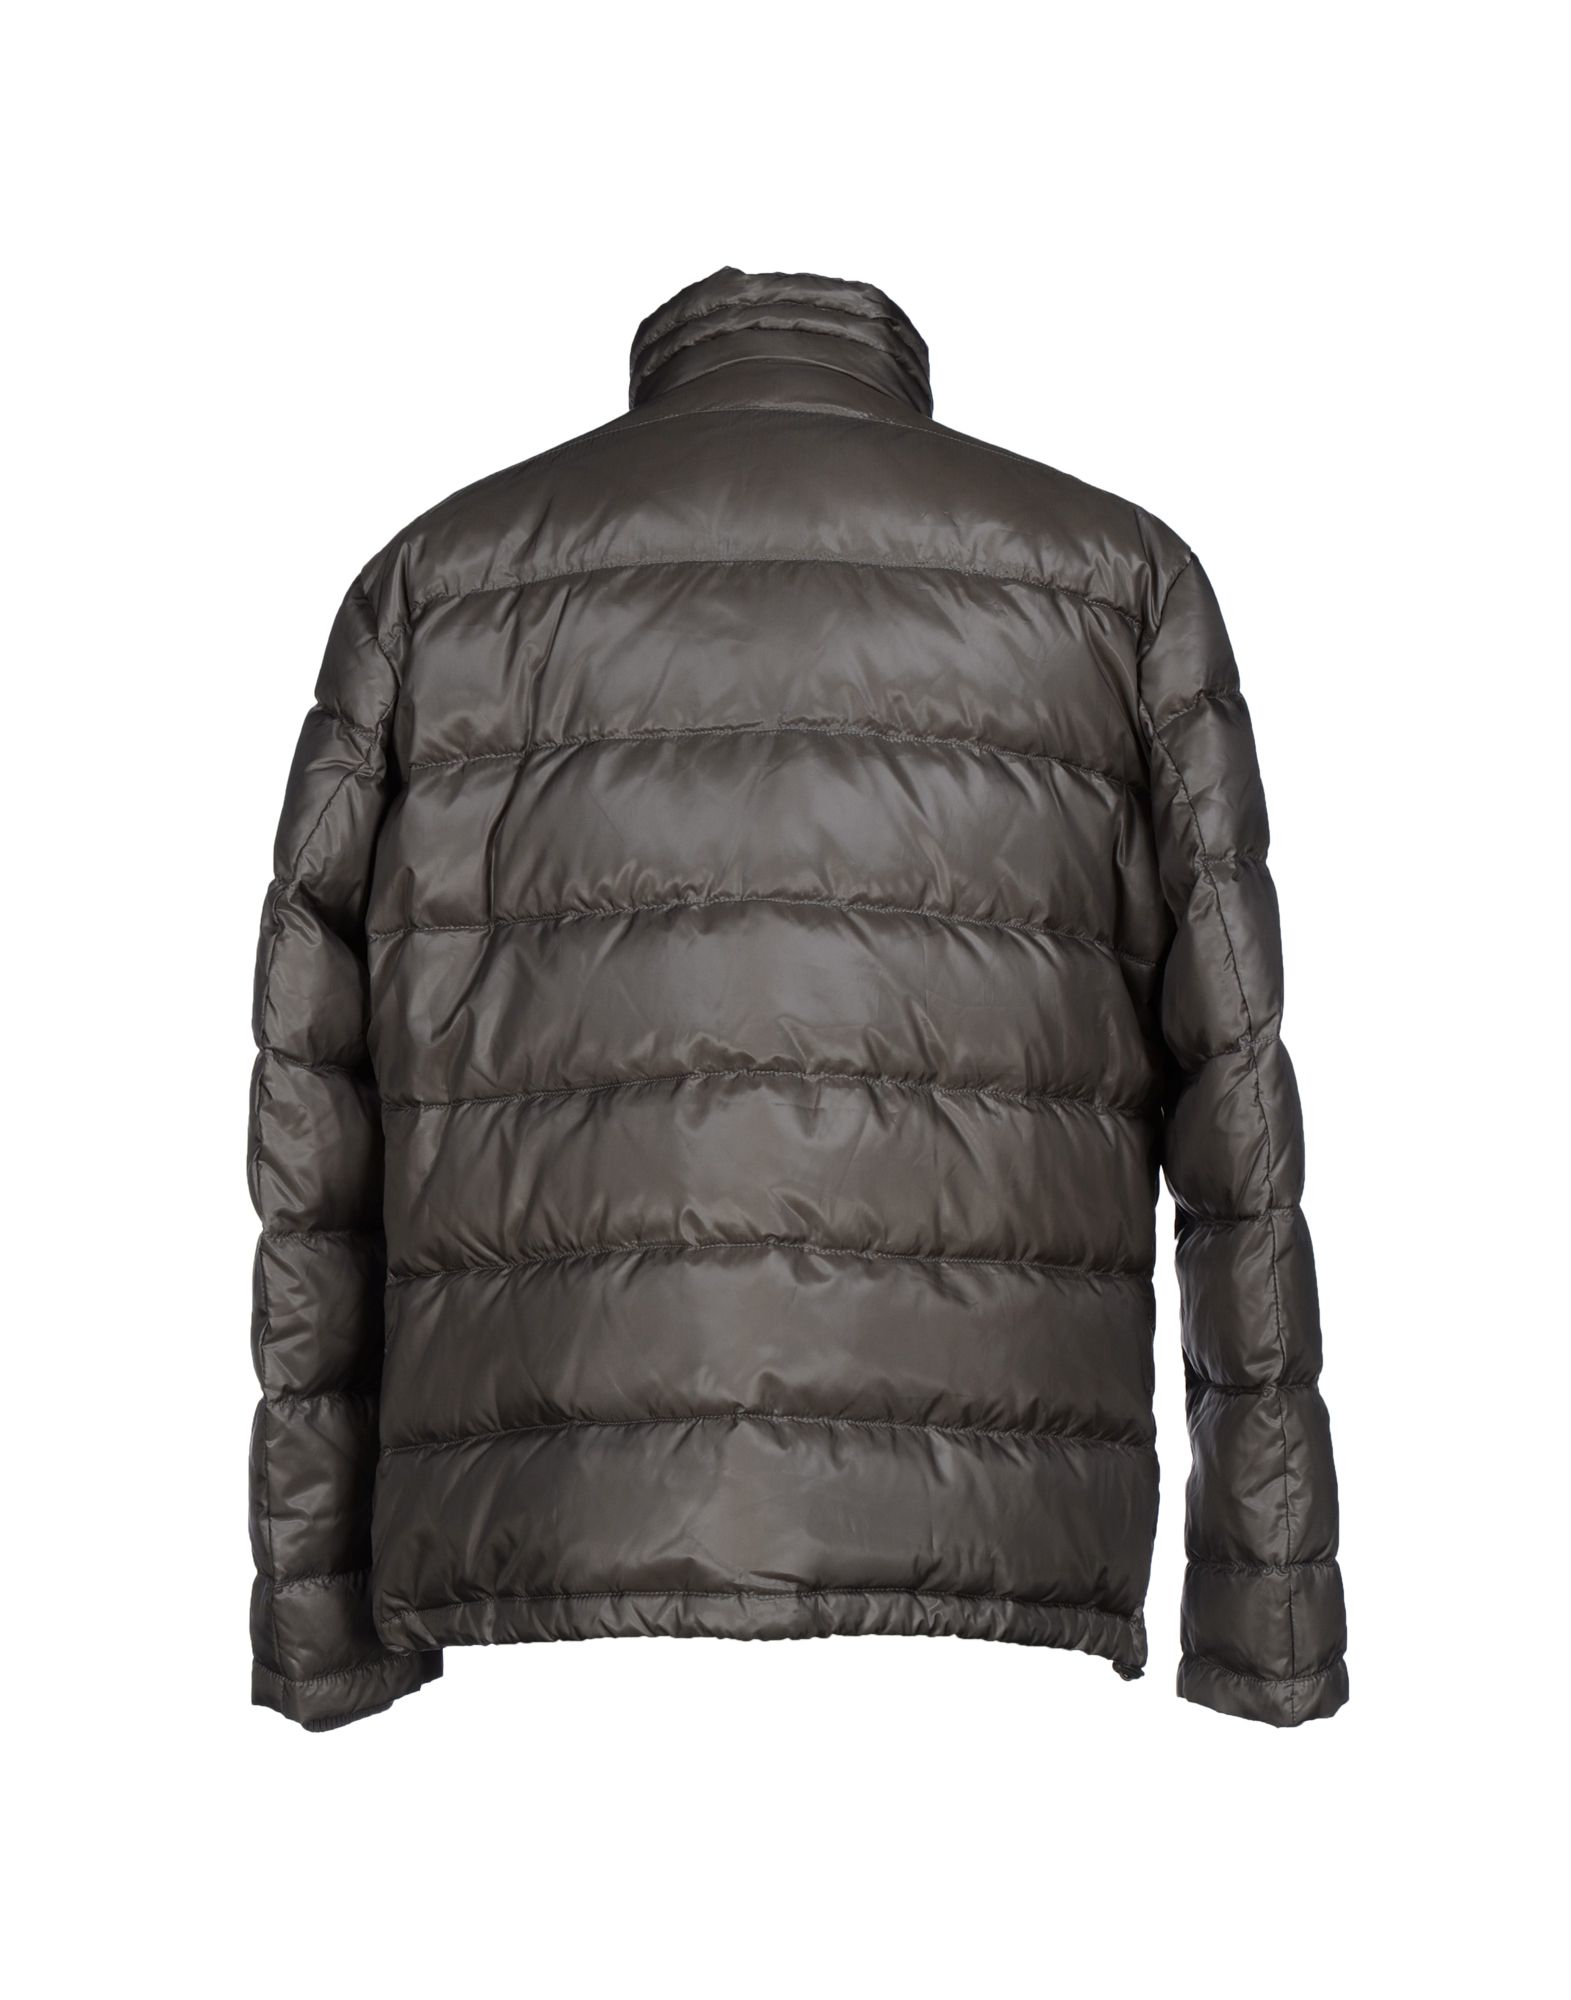 Harmont & Blaine Down Jacket in Lead (Grey) for Men